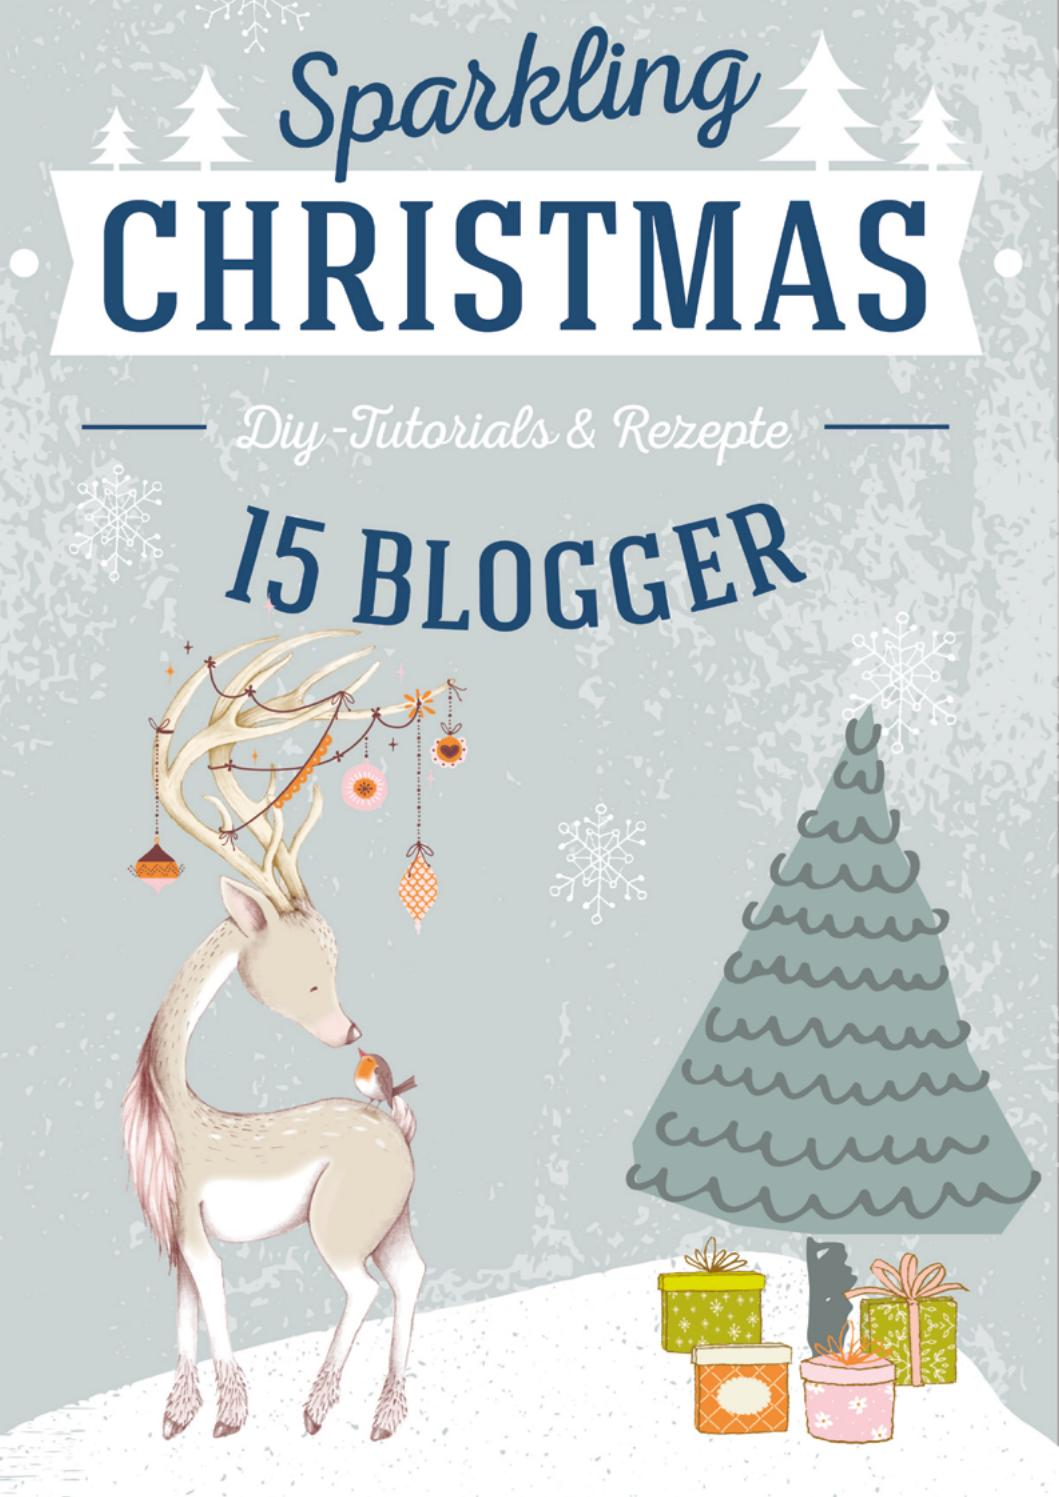 Sparkling Christmas Blogger Ebook by happy serendipity - issuu